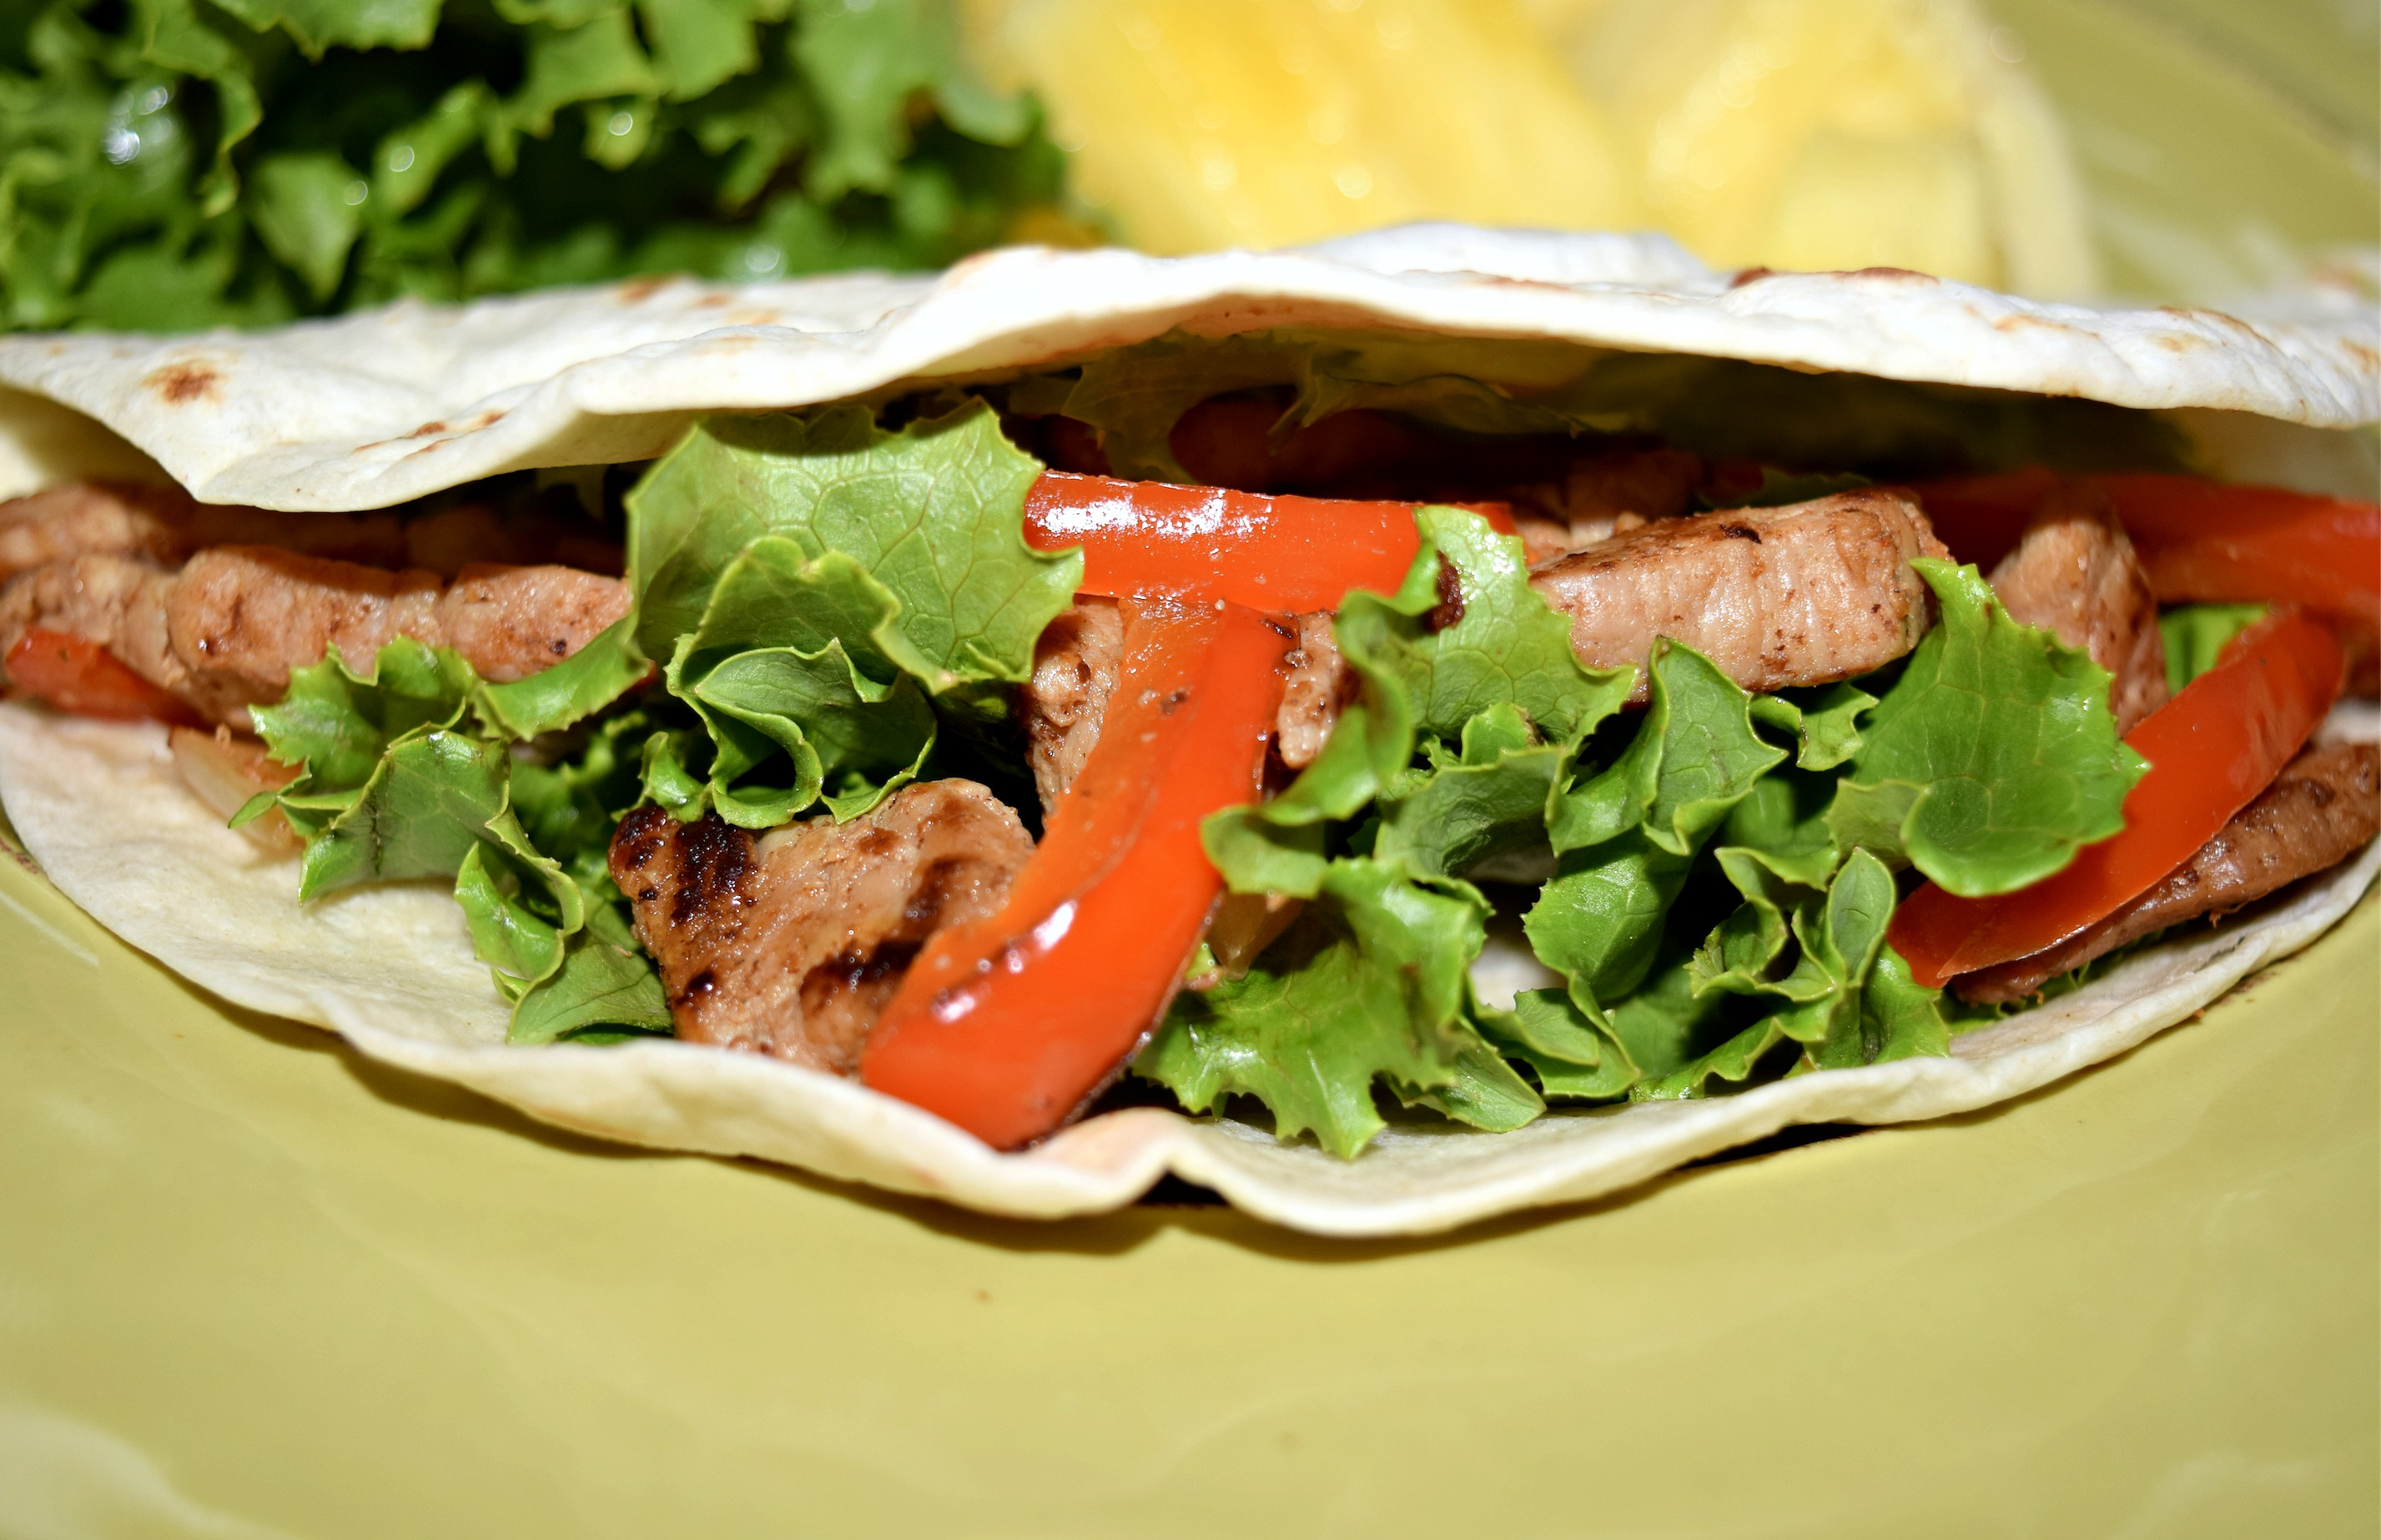 Sweet Teriyaki Pork Fajitas recipe made with Smithfield Sweet Teriyaki Marinated Pork